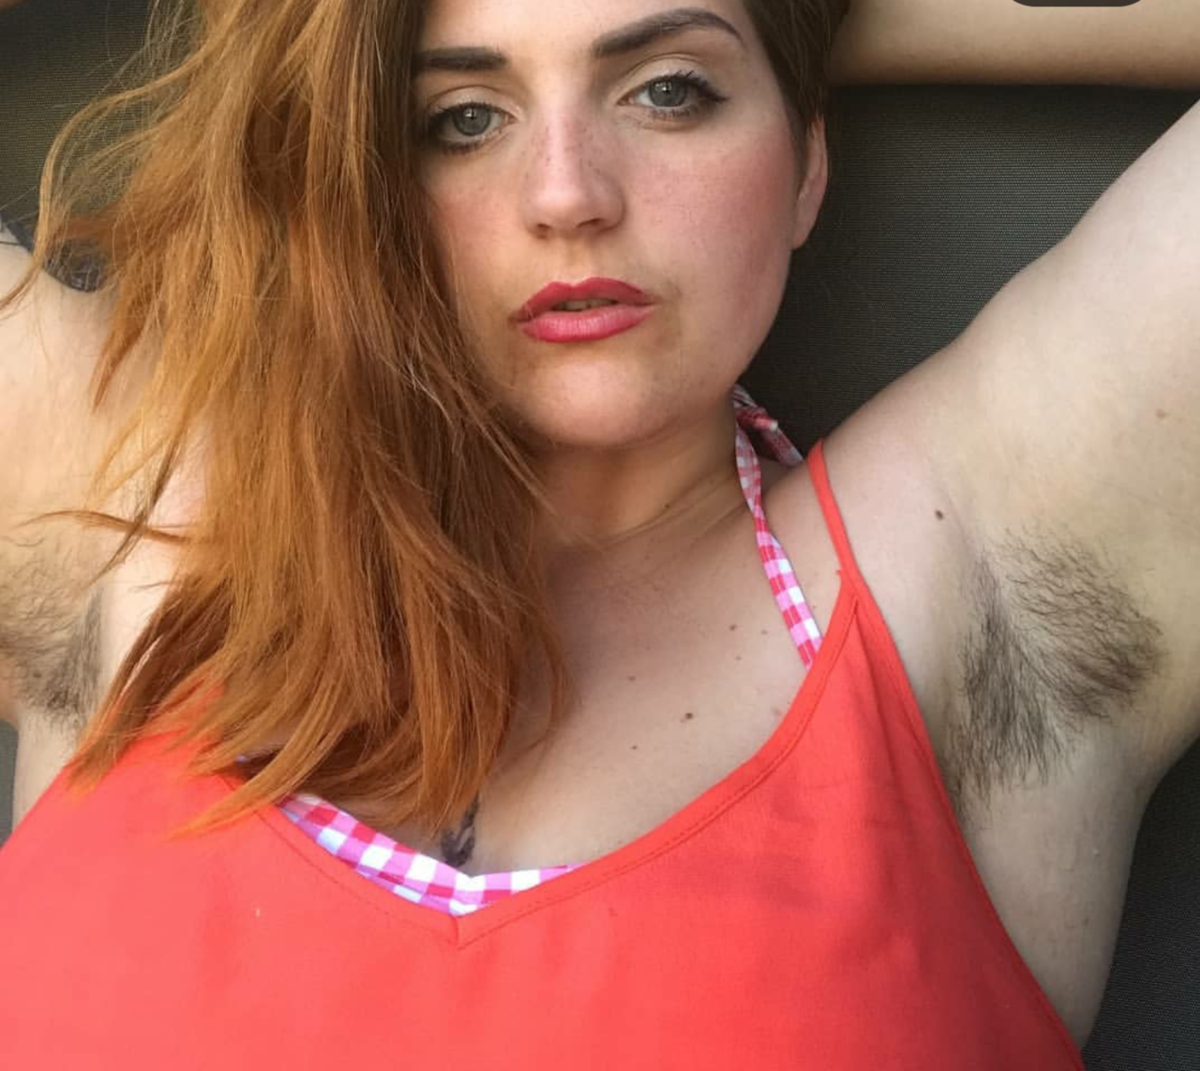 Most hairy woman